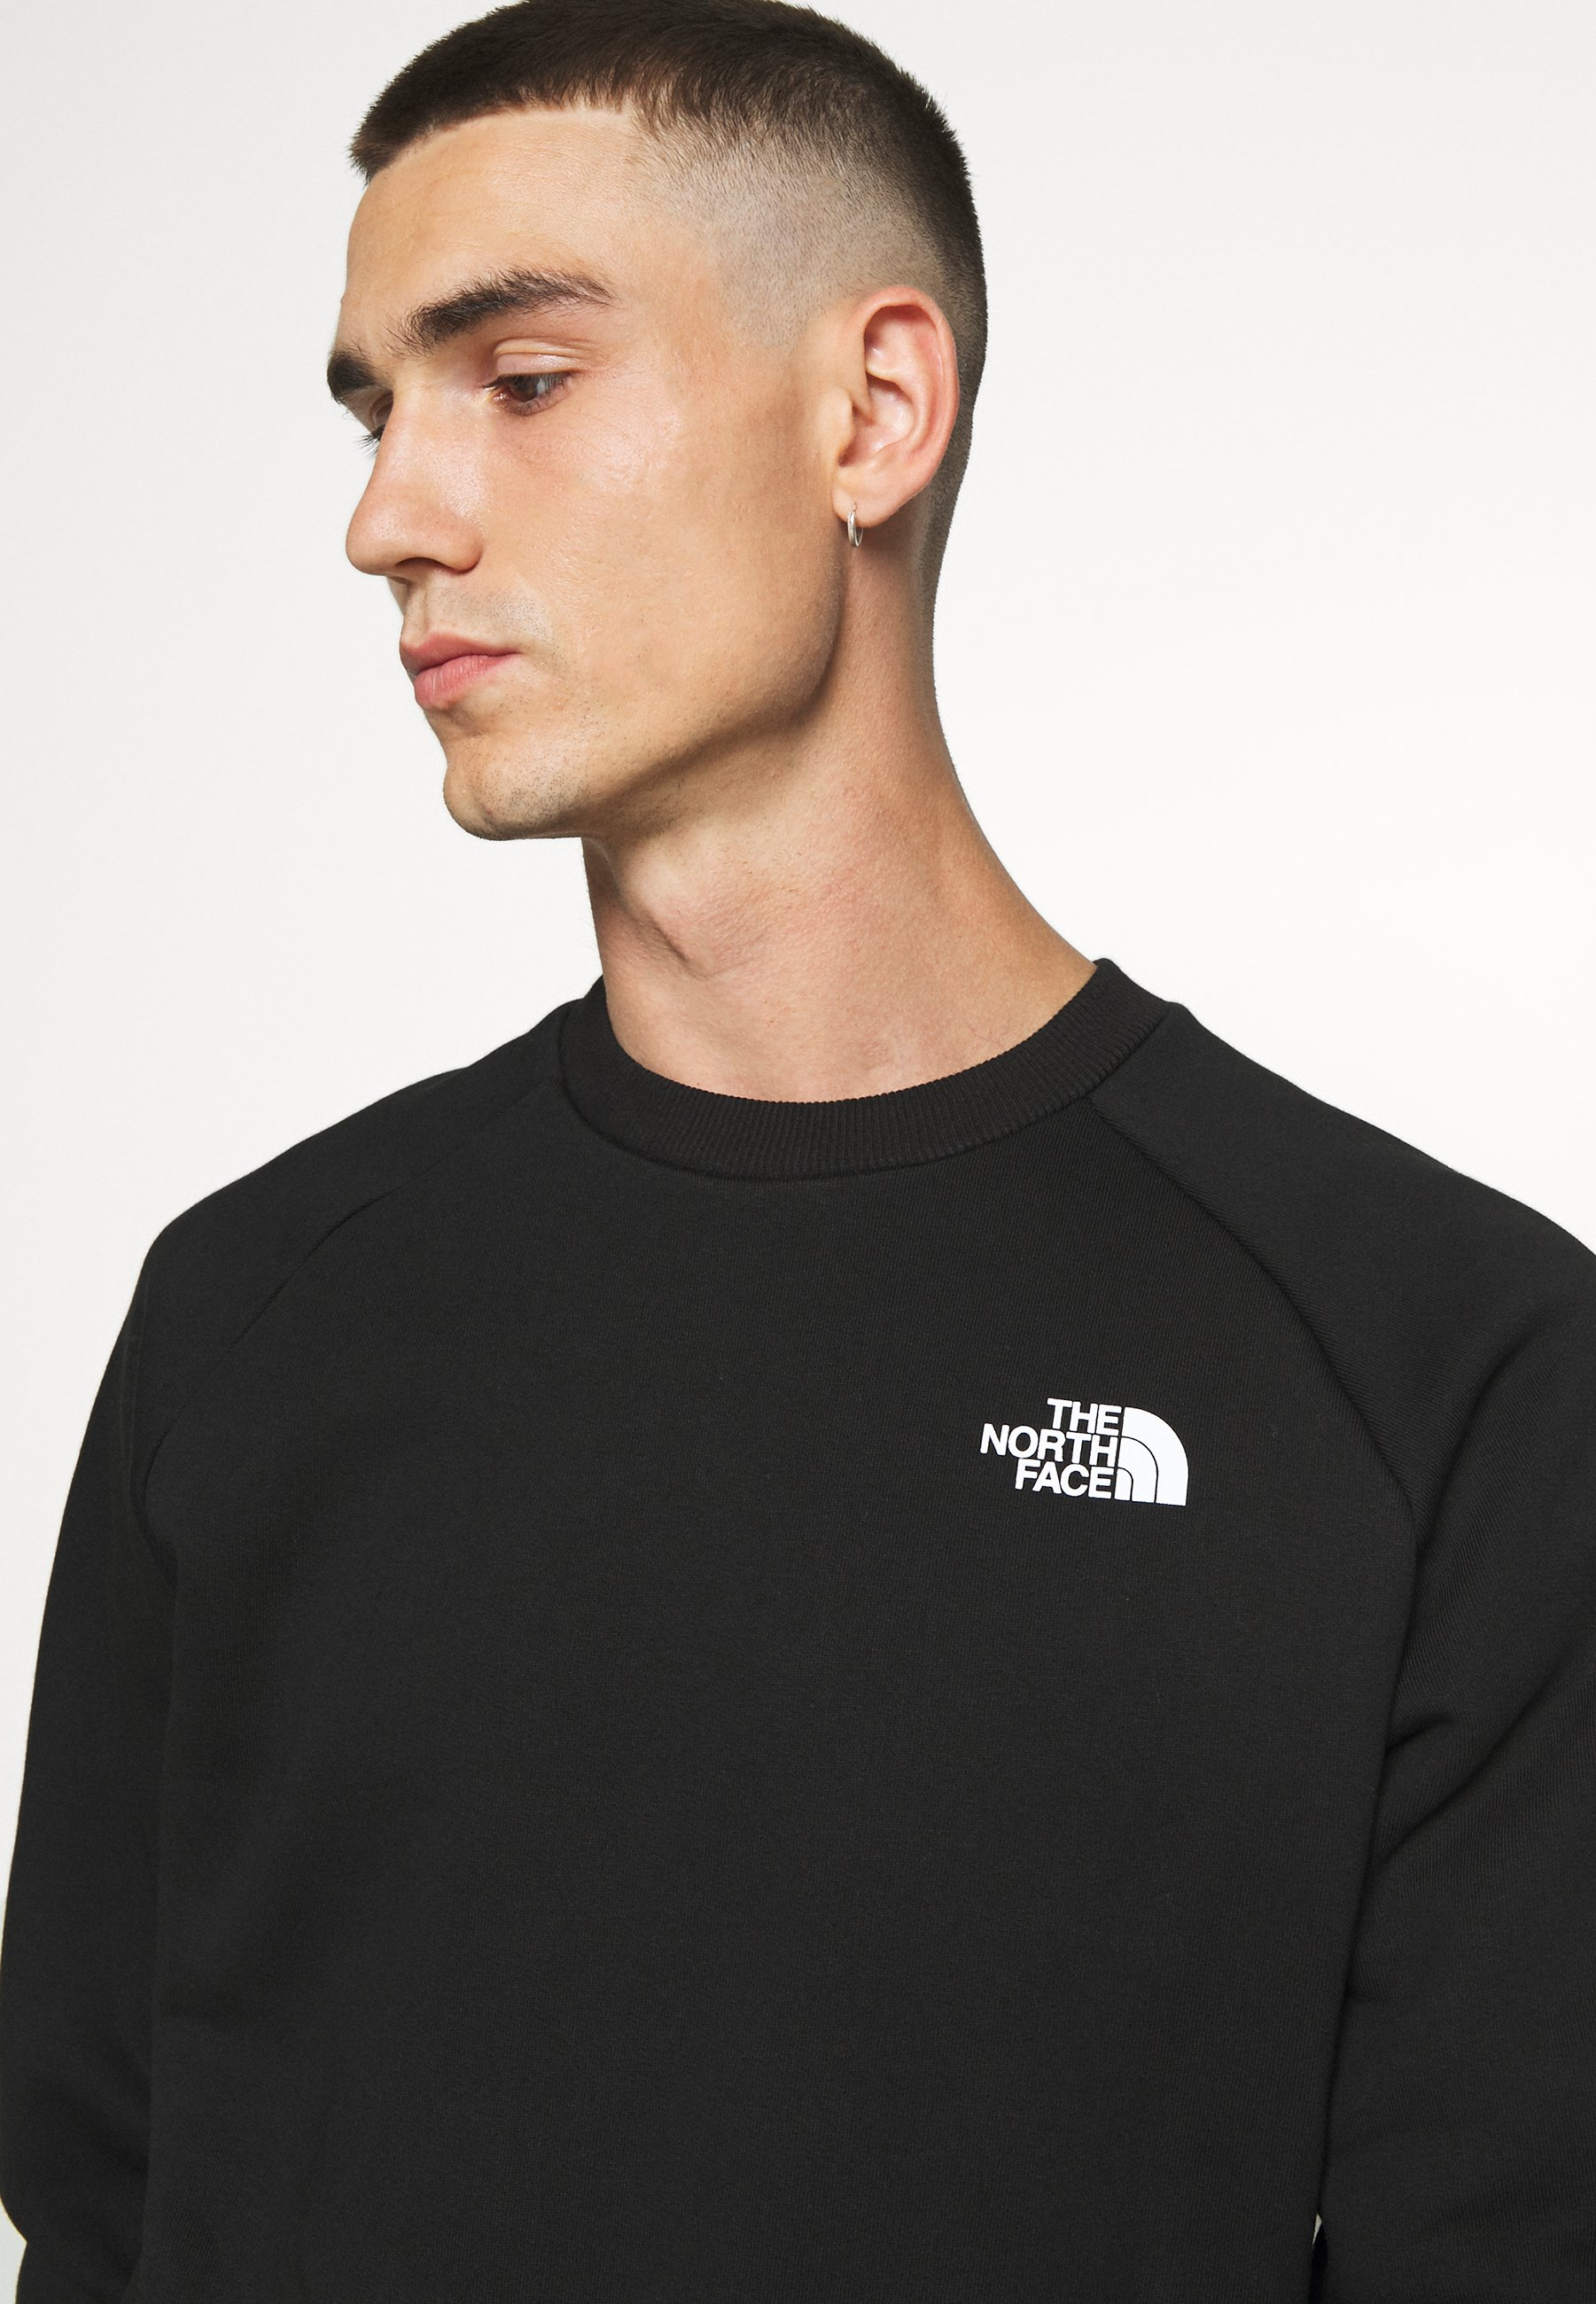 The North Face RAGLAN REDBOX CREW NEW Sweatshirt black